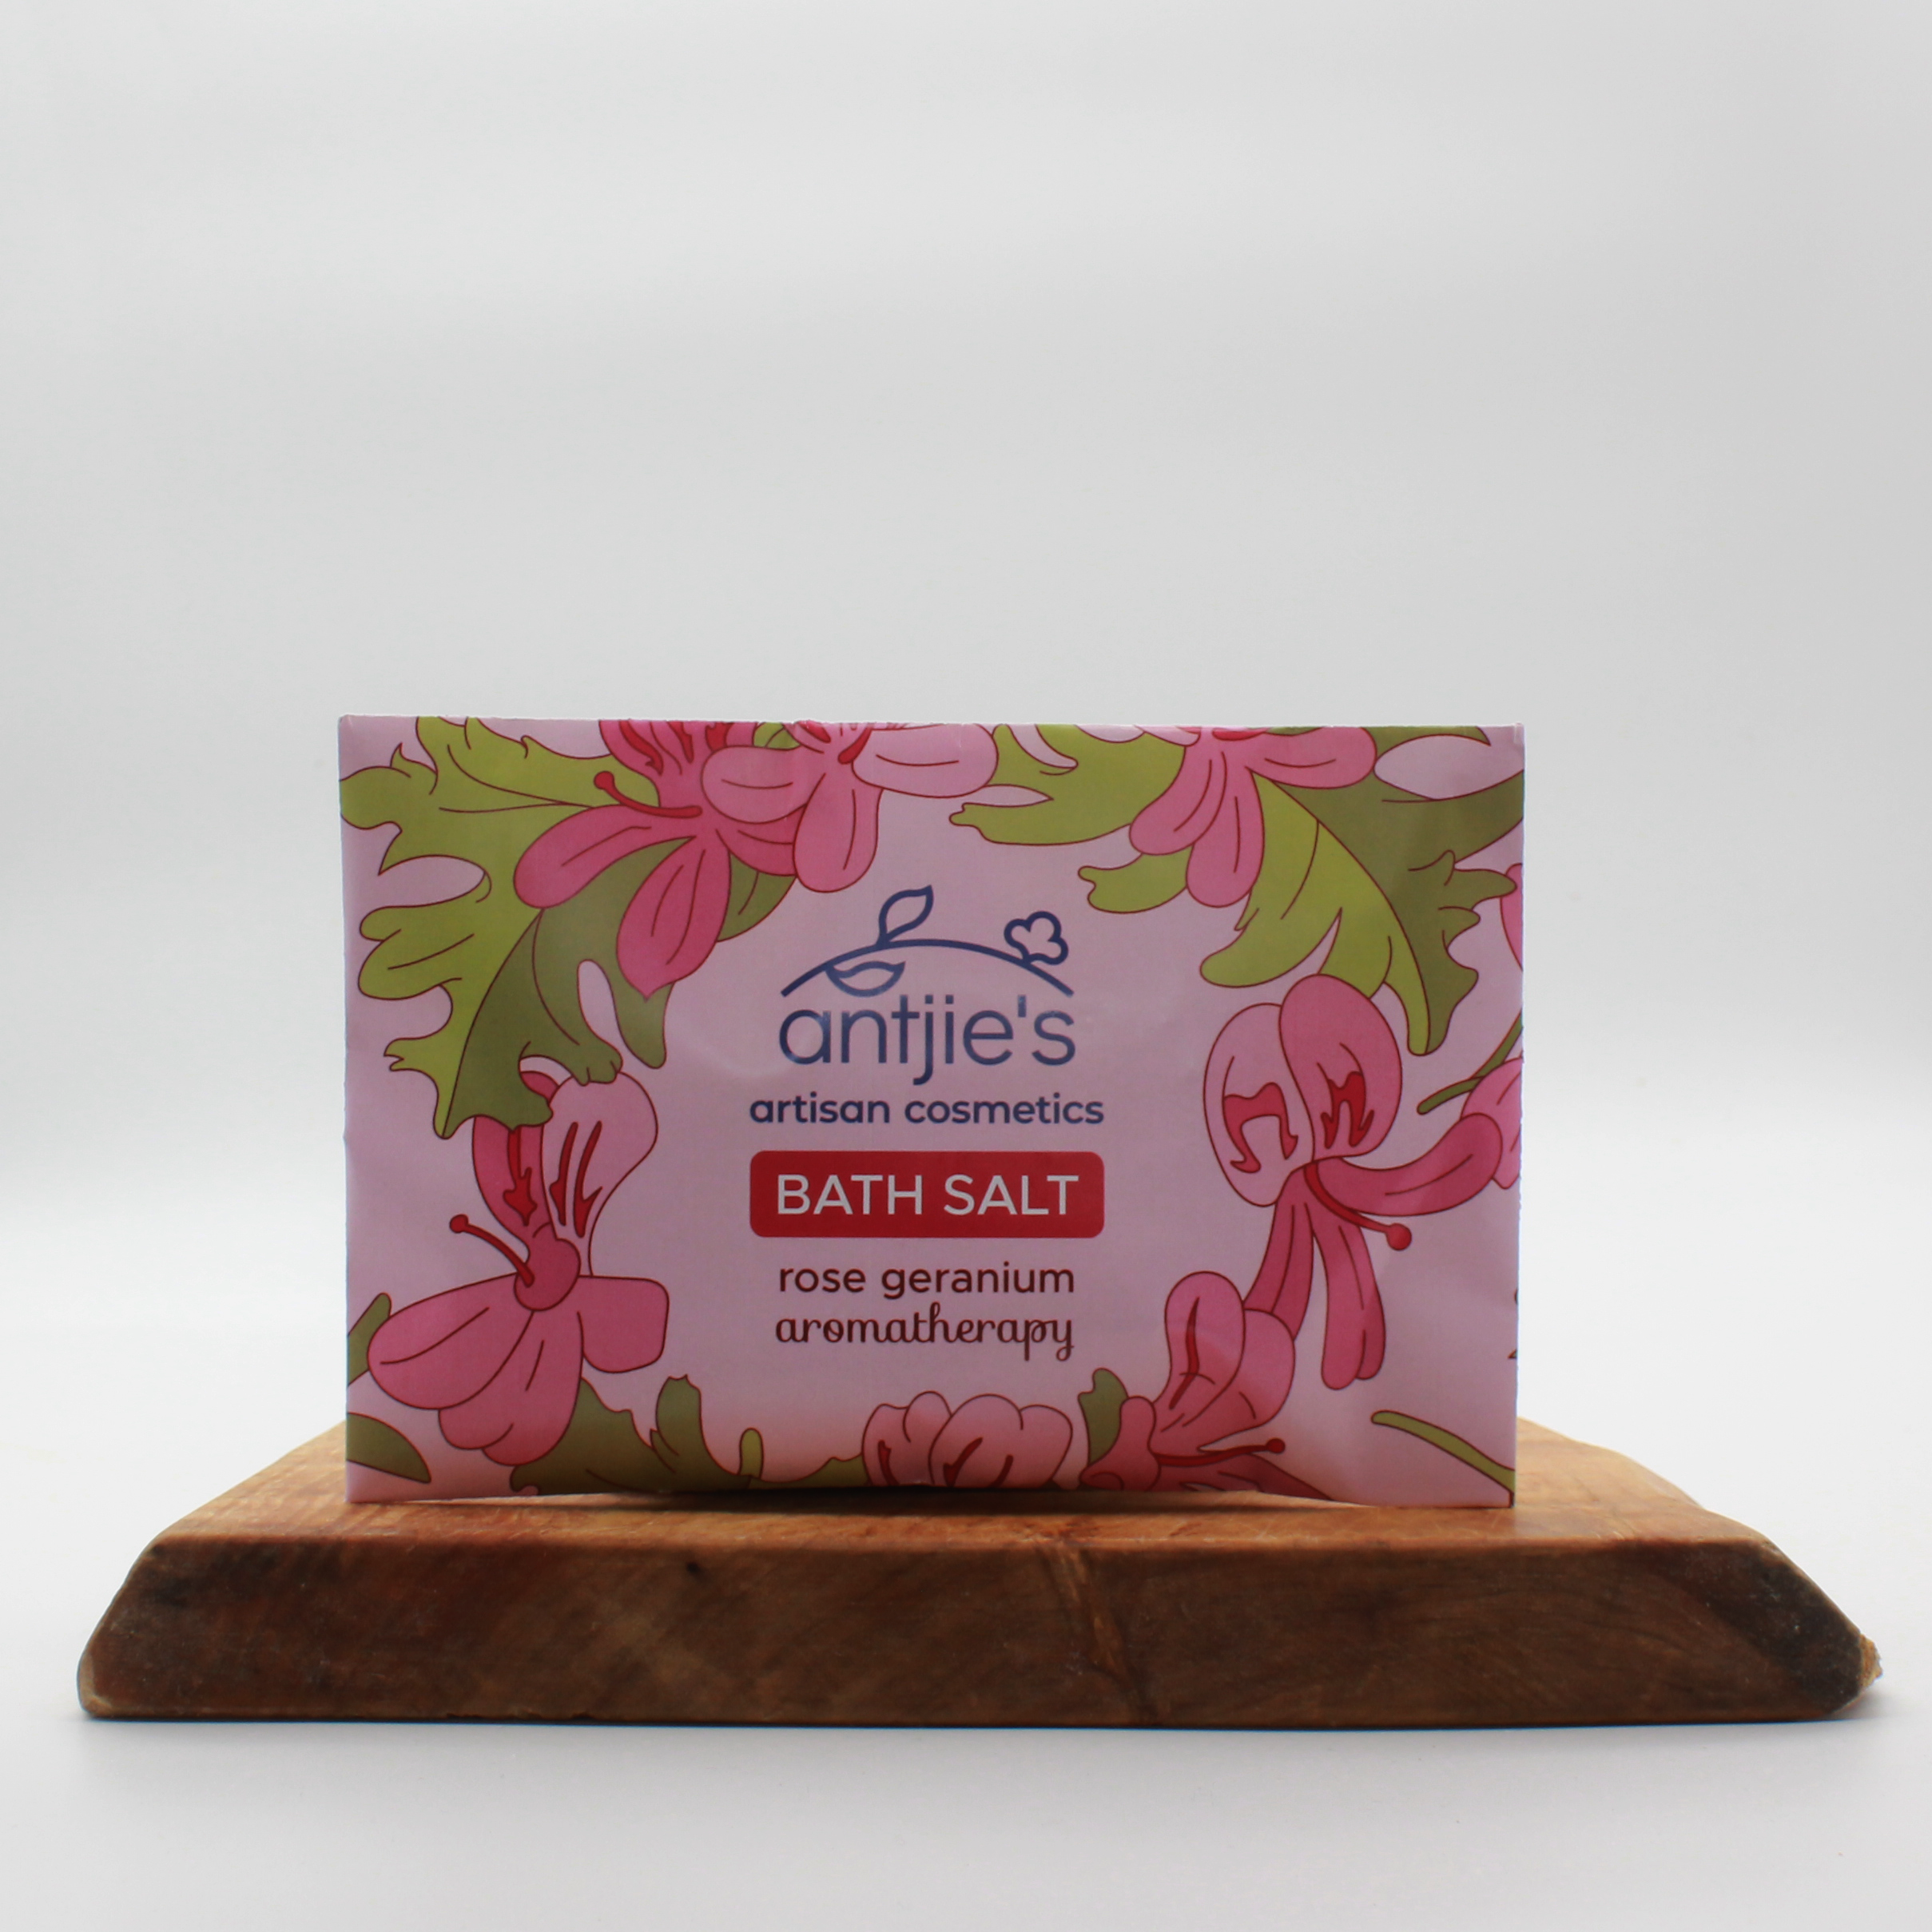 Rose geranium bath salts in an envelope sitting on a wooden board with a white background